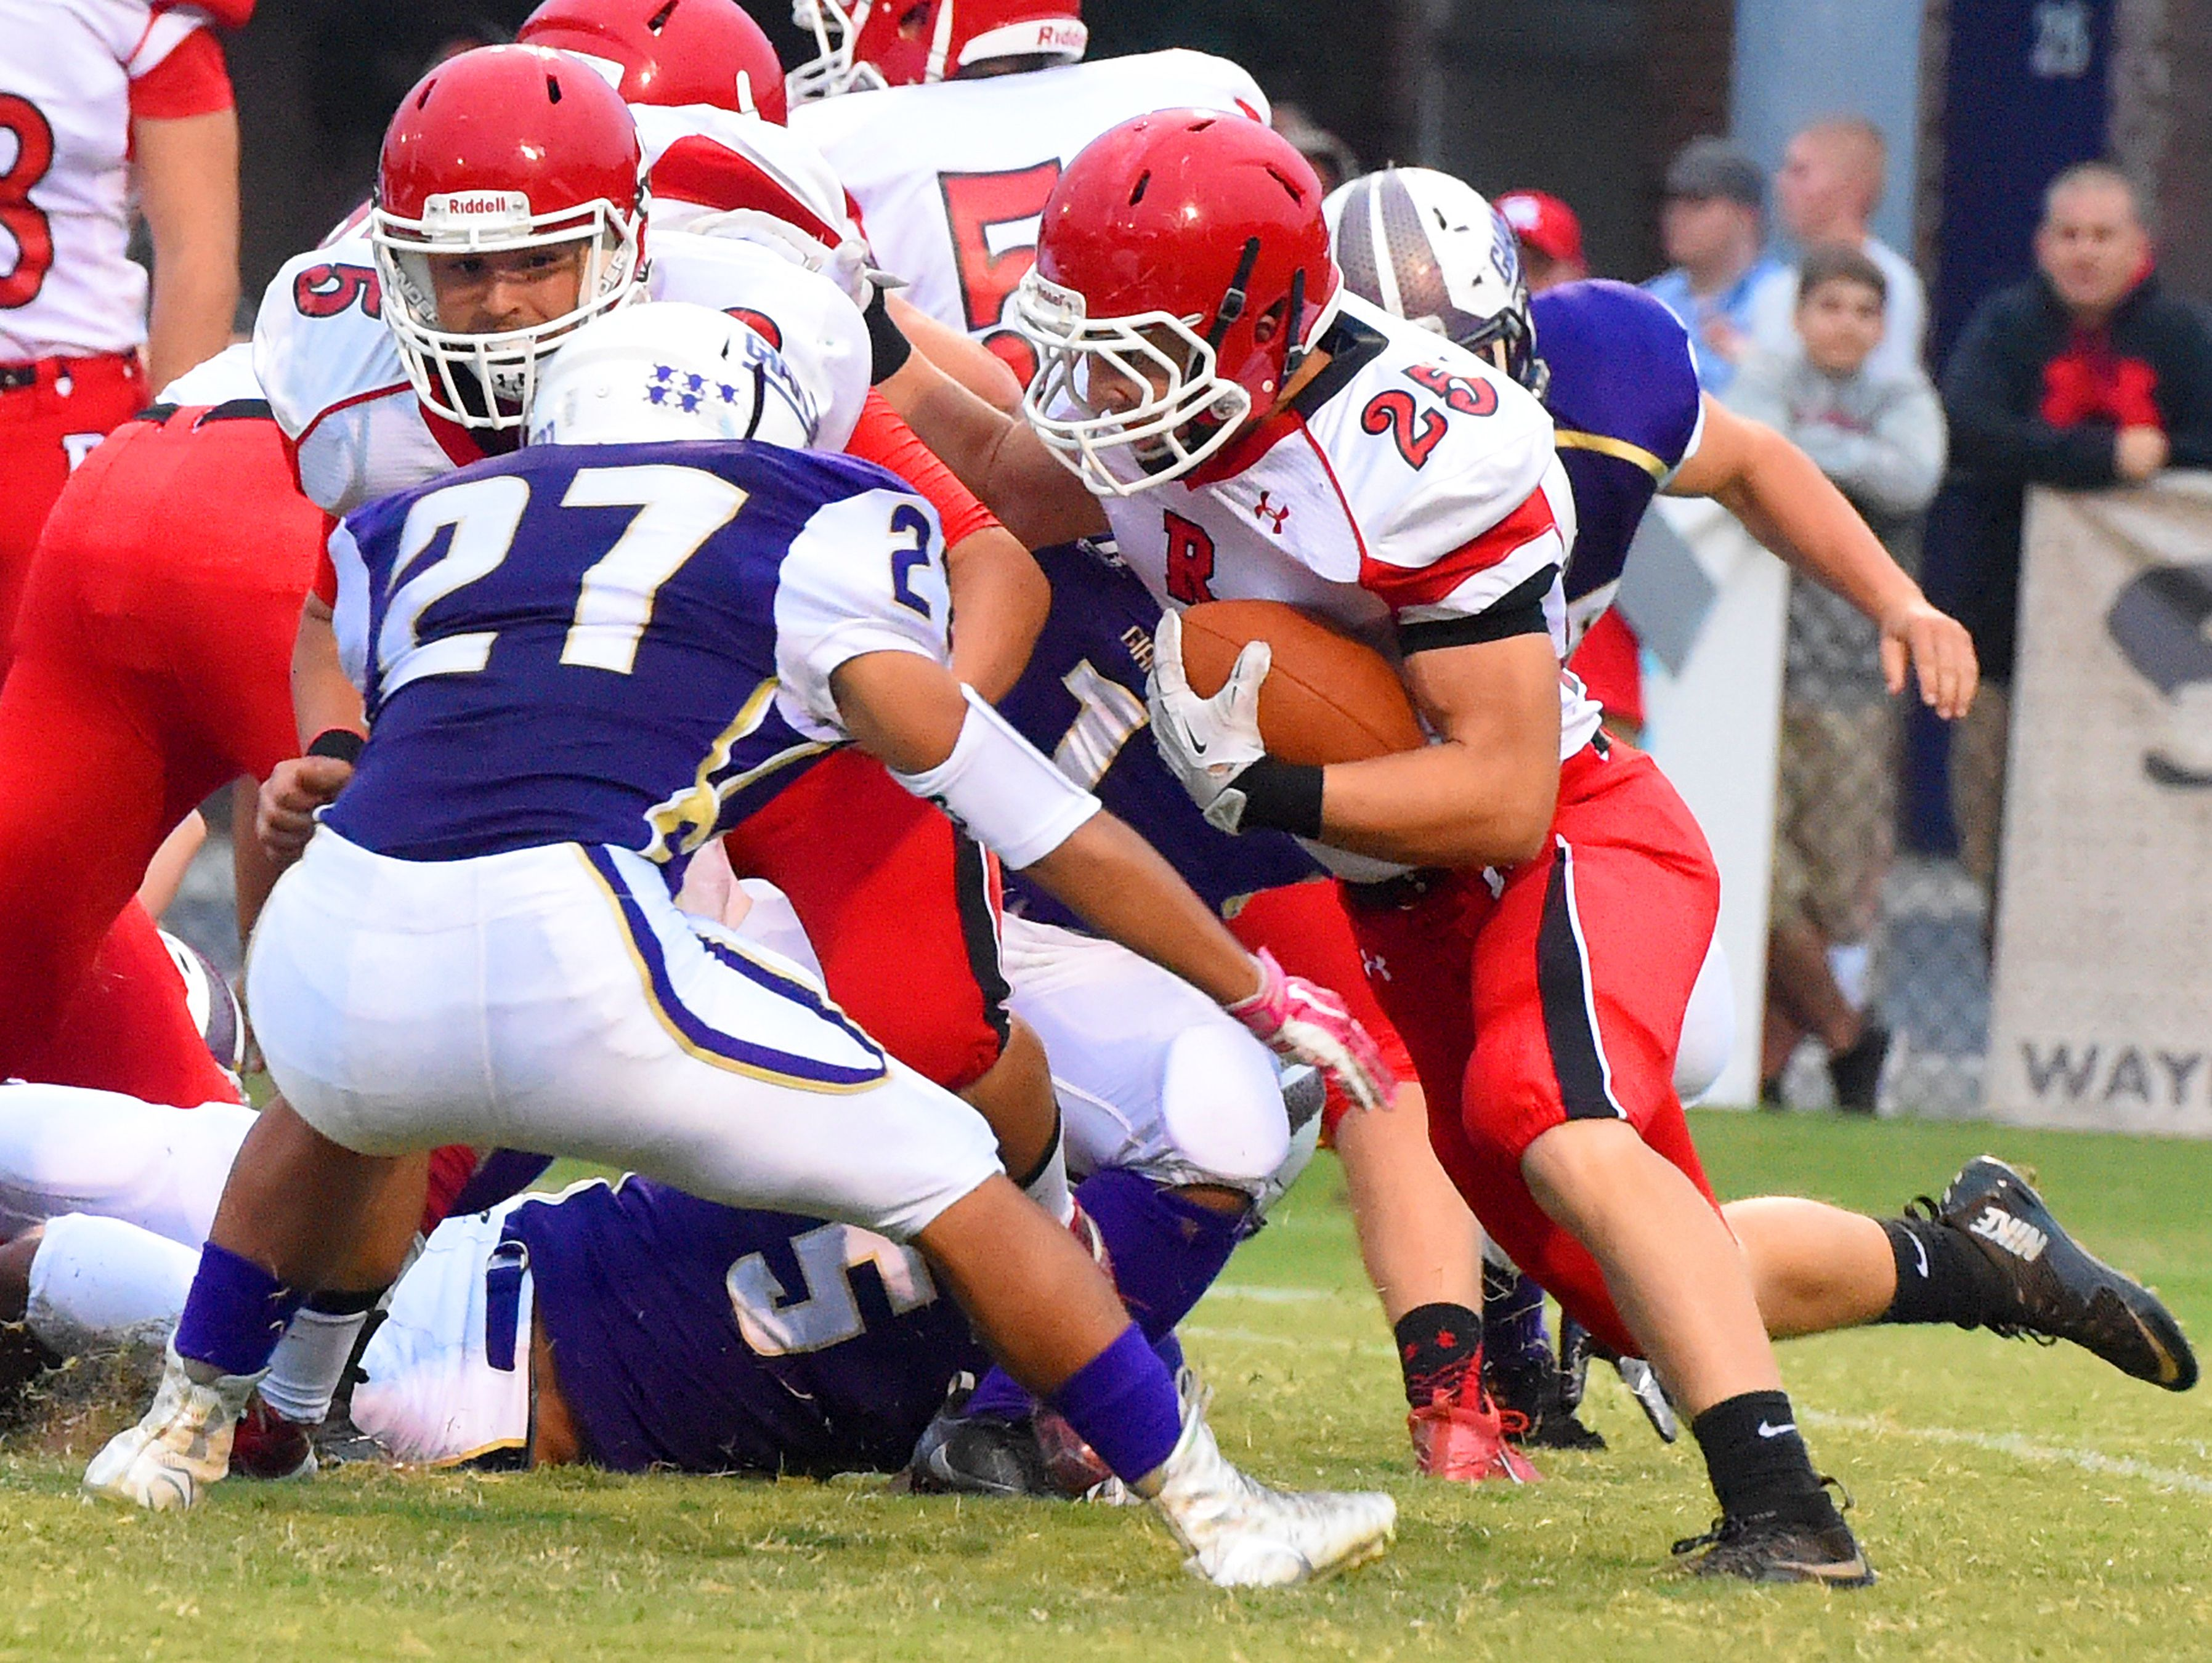 Riverheads' Brett Hostetler runs the football as teammate Chase Armstrong (left) holds off Waynesboro's Phillip Monterrozo during a football game played in Waynesboro on Friday, Sept. 16, 2016.